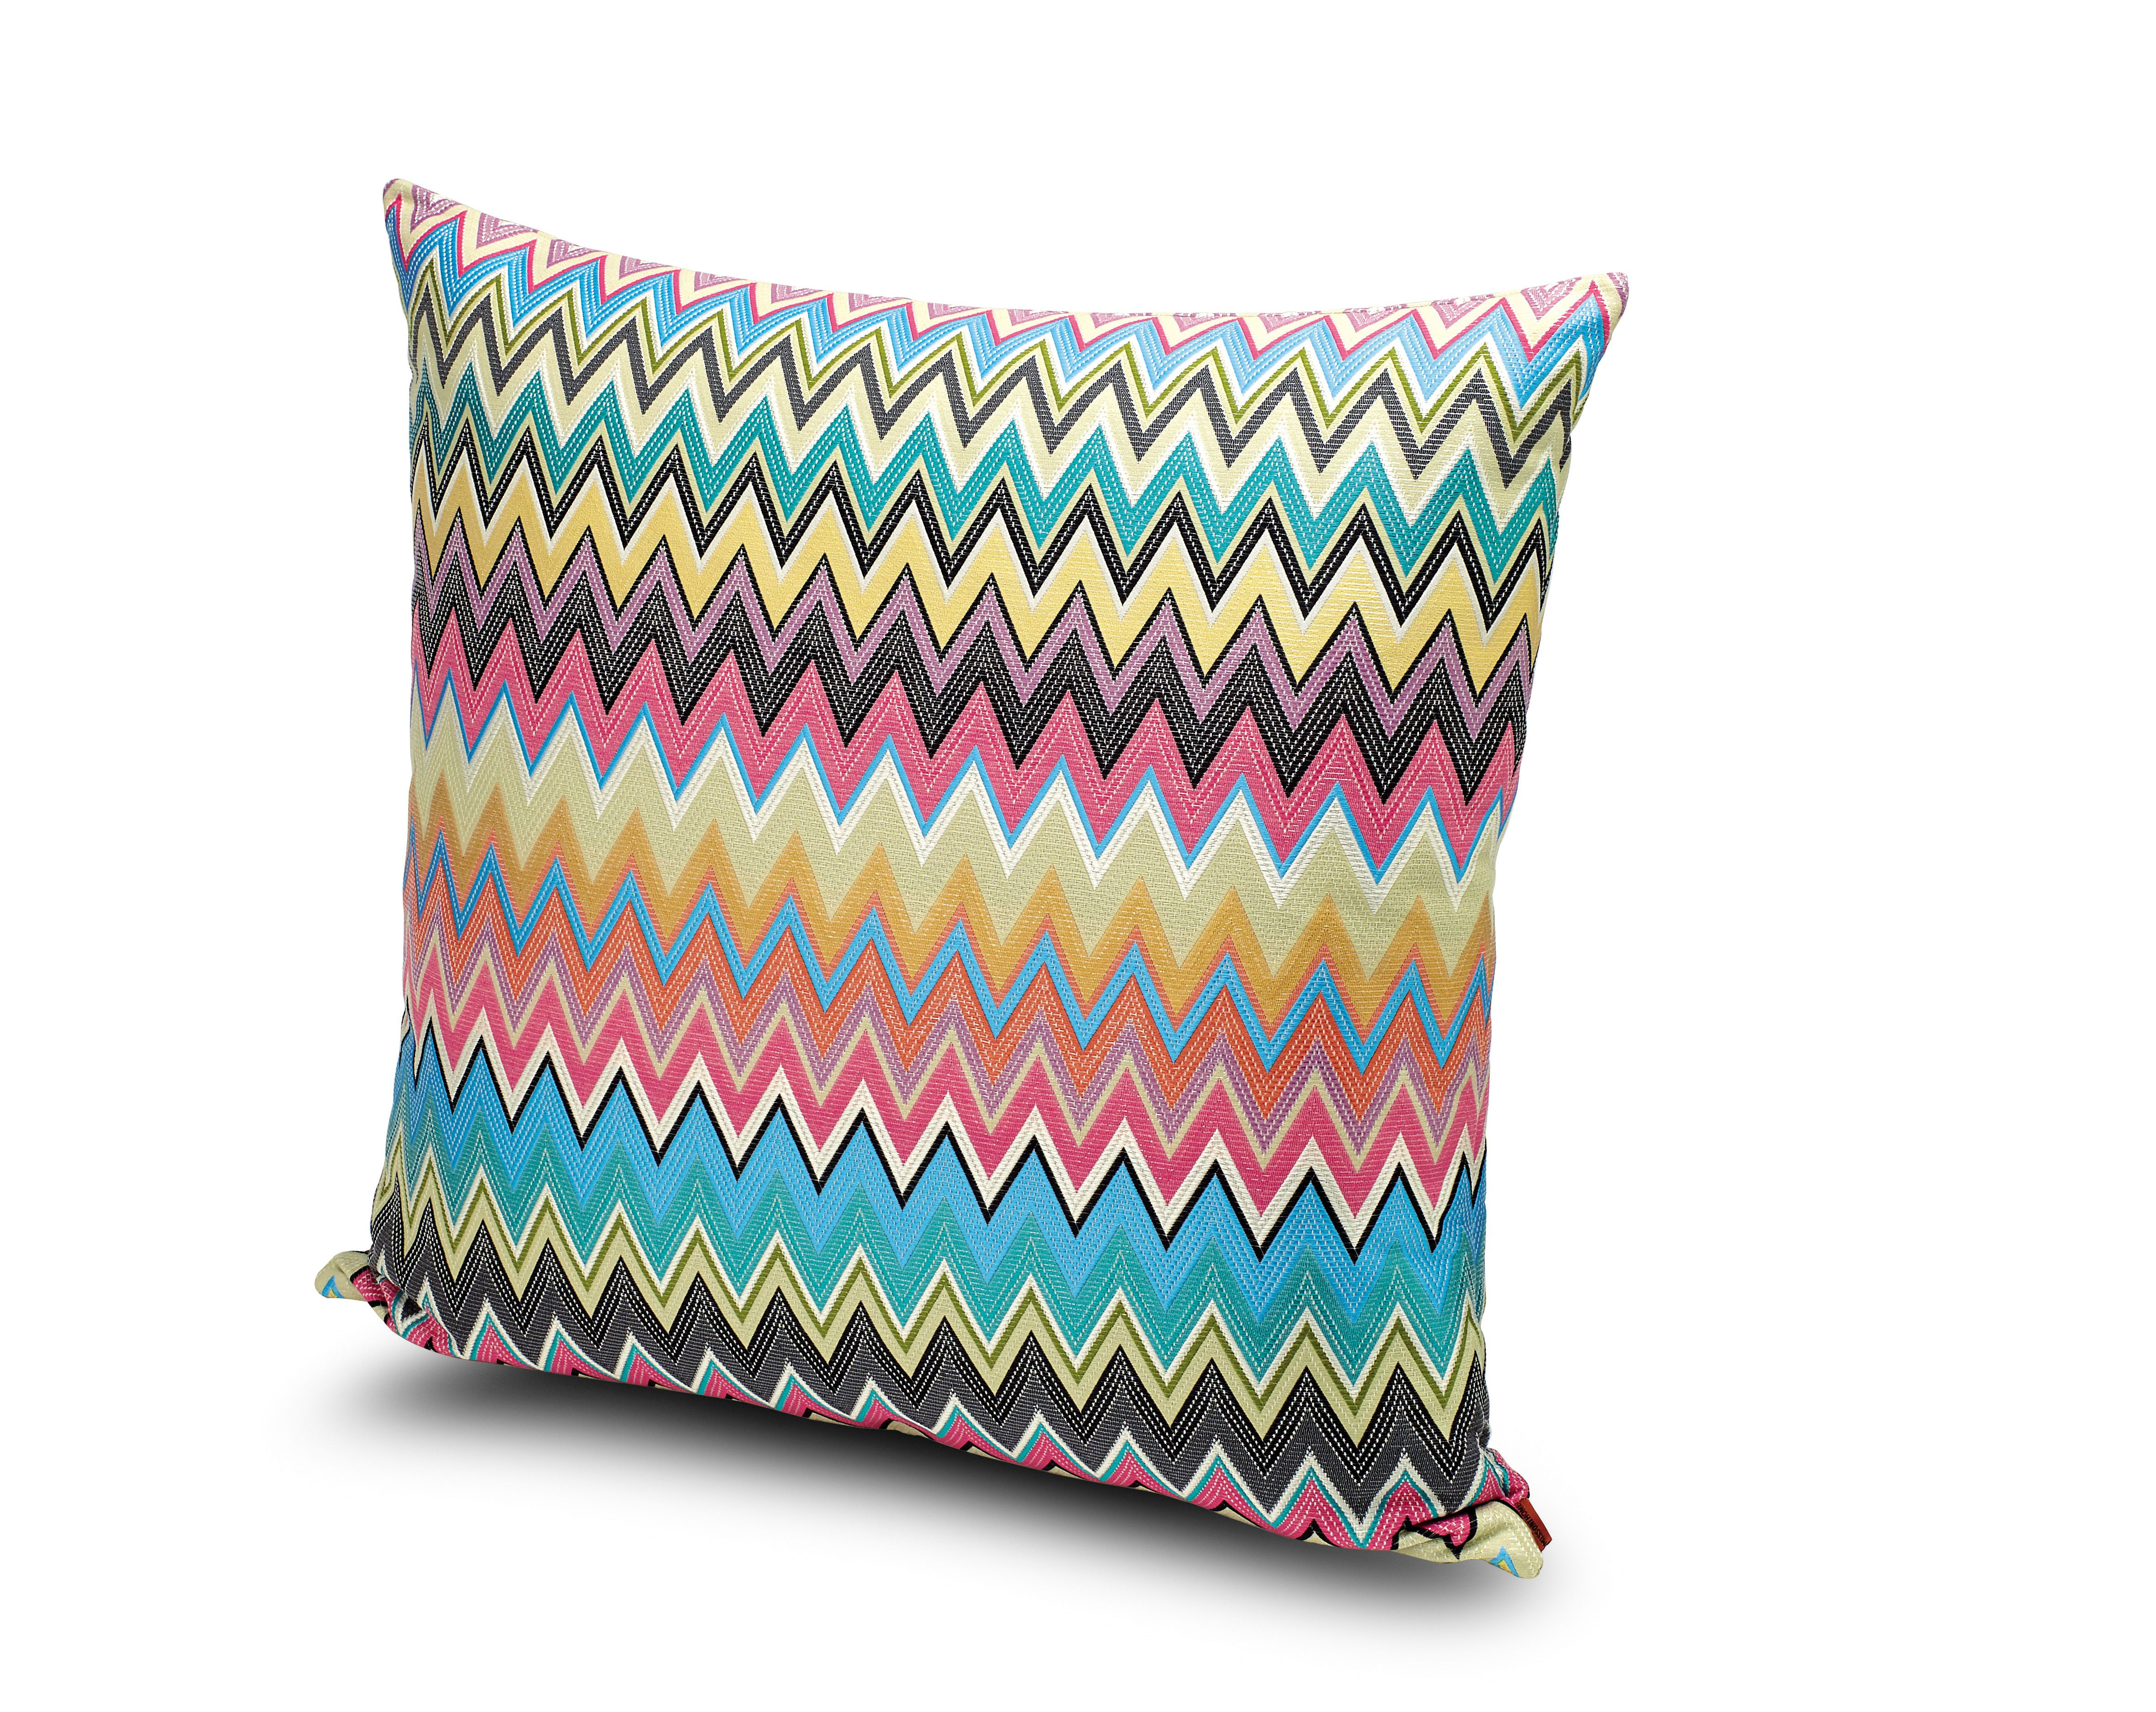 8131f9175aa2 ... Pillows that Pop by MissoniHome. Enjoy the weekend with some shopping  and a fresh dose of colors. Discover all the